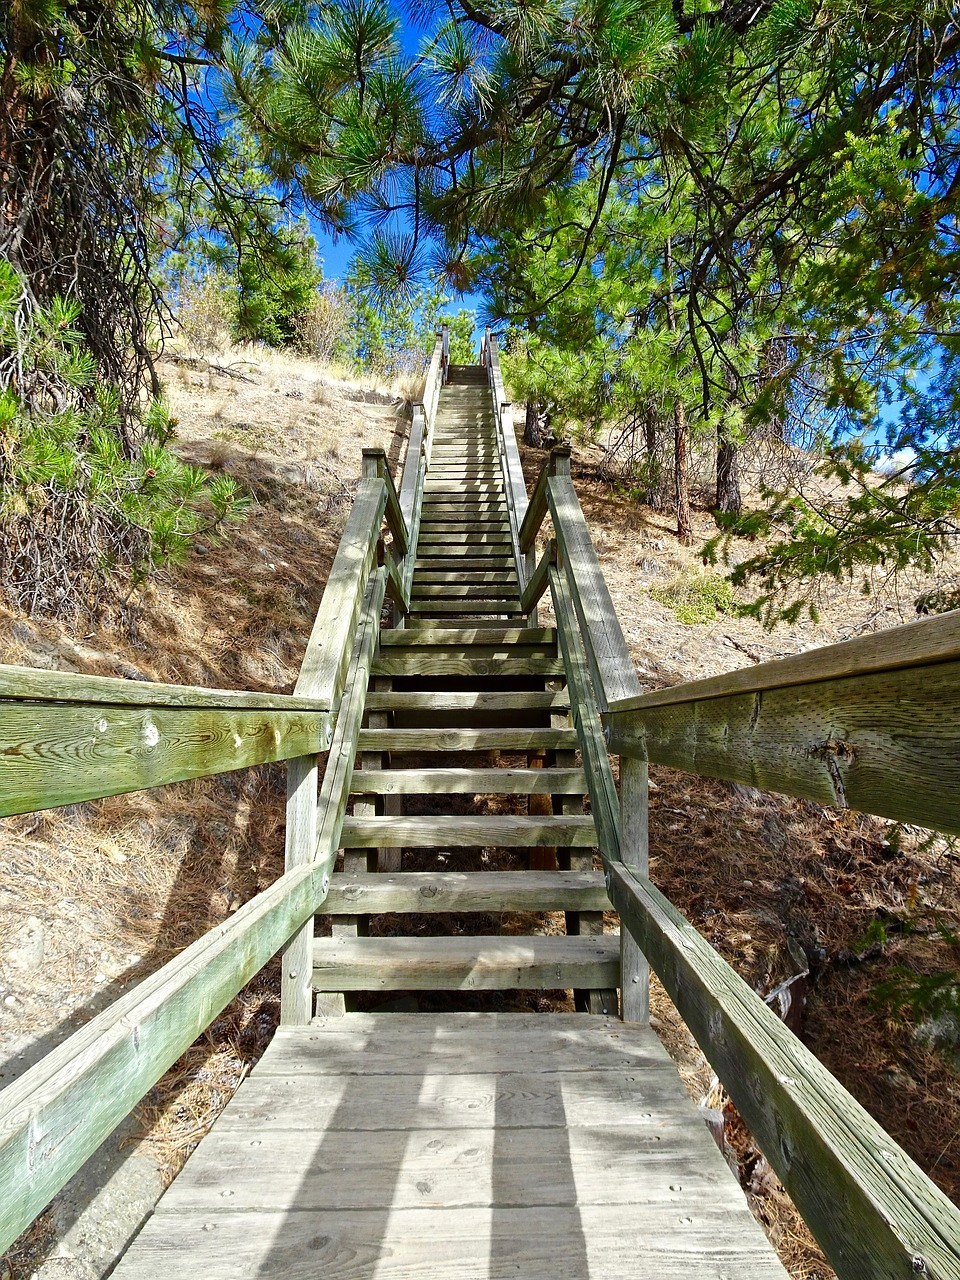 Stairway,perspective,staircase,construction,walkway - free photo